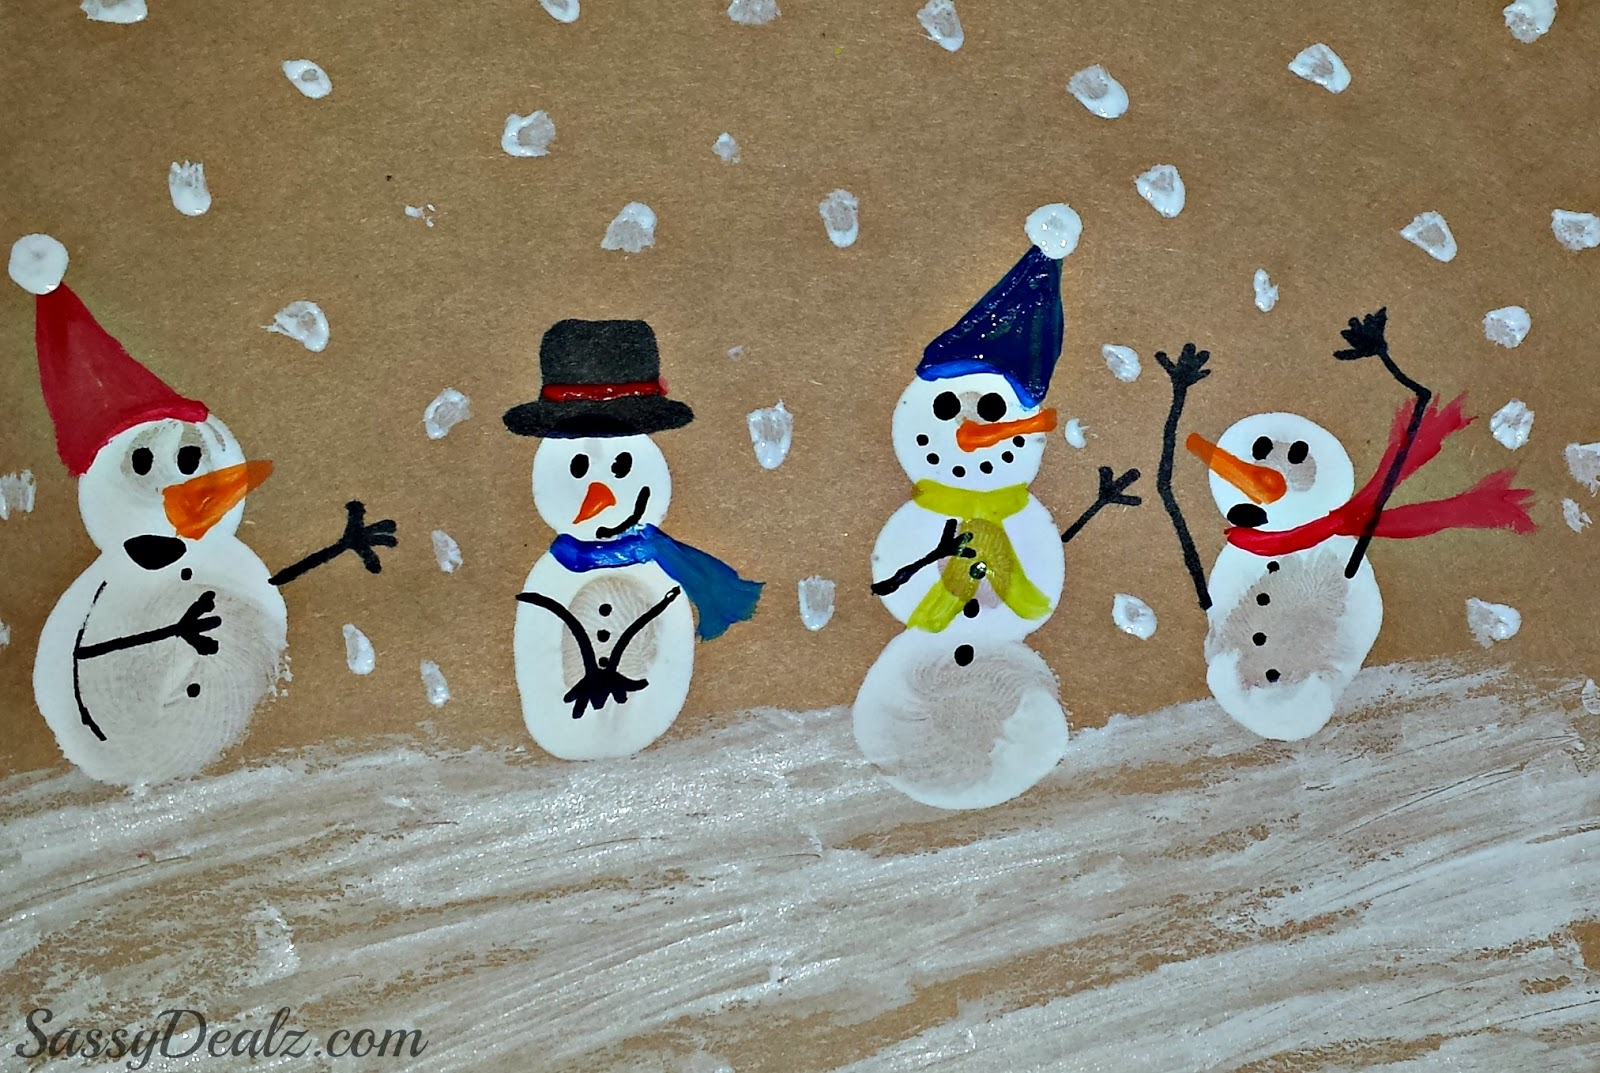 Diy fingerprint snowman winter craft for kids crafty morning for How to make winter crafts